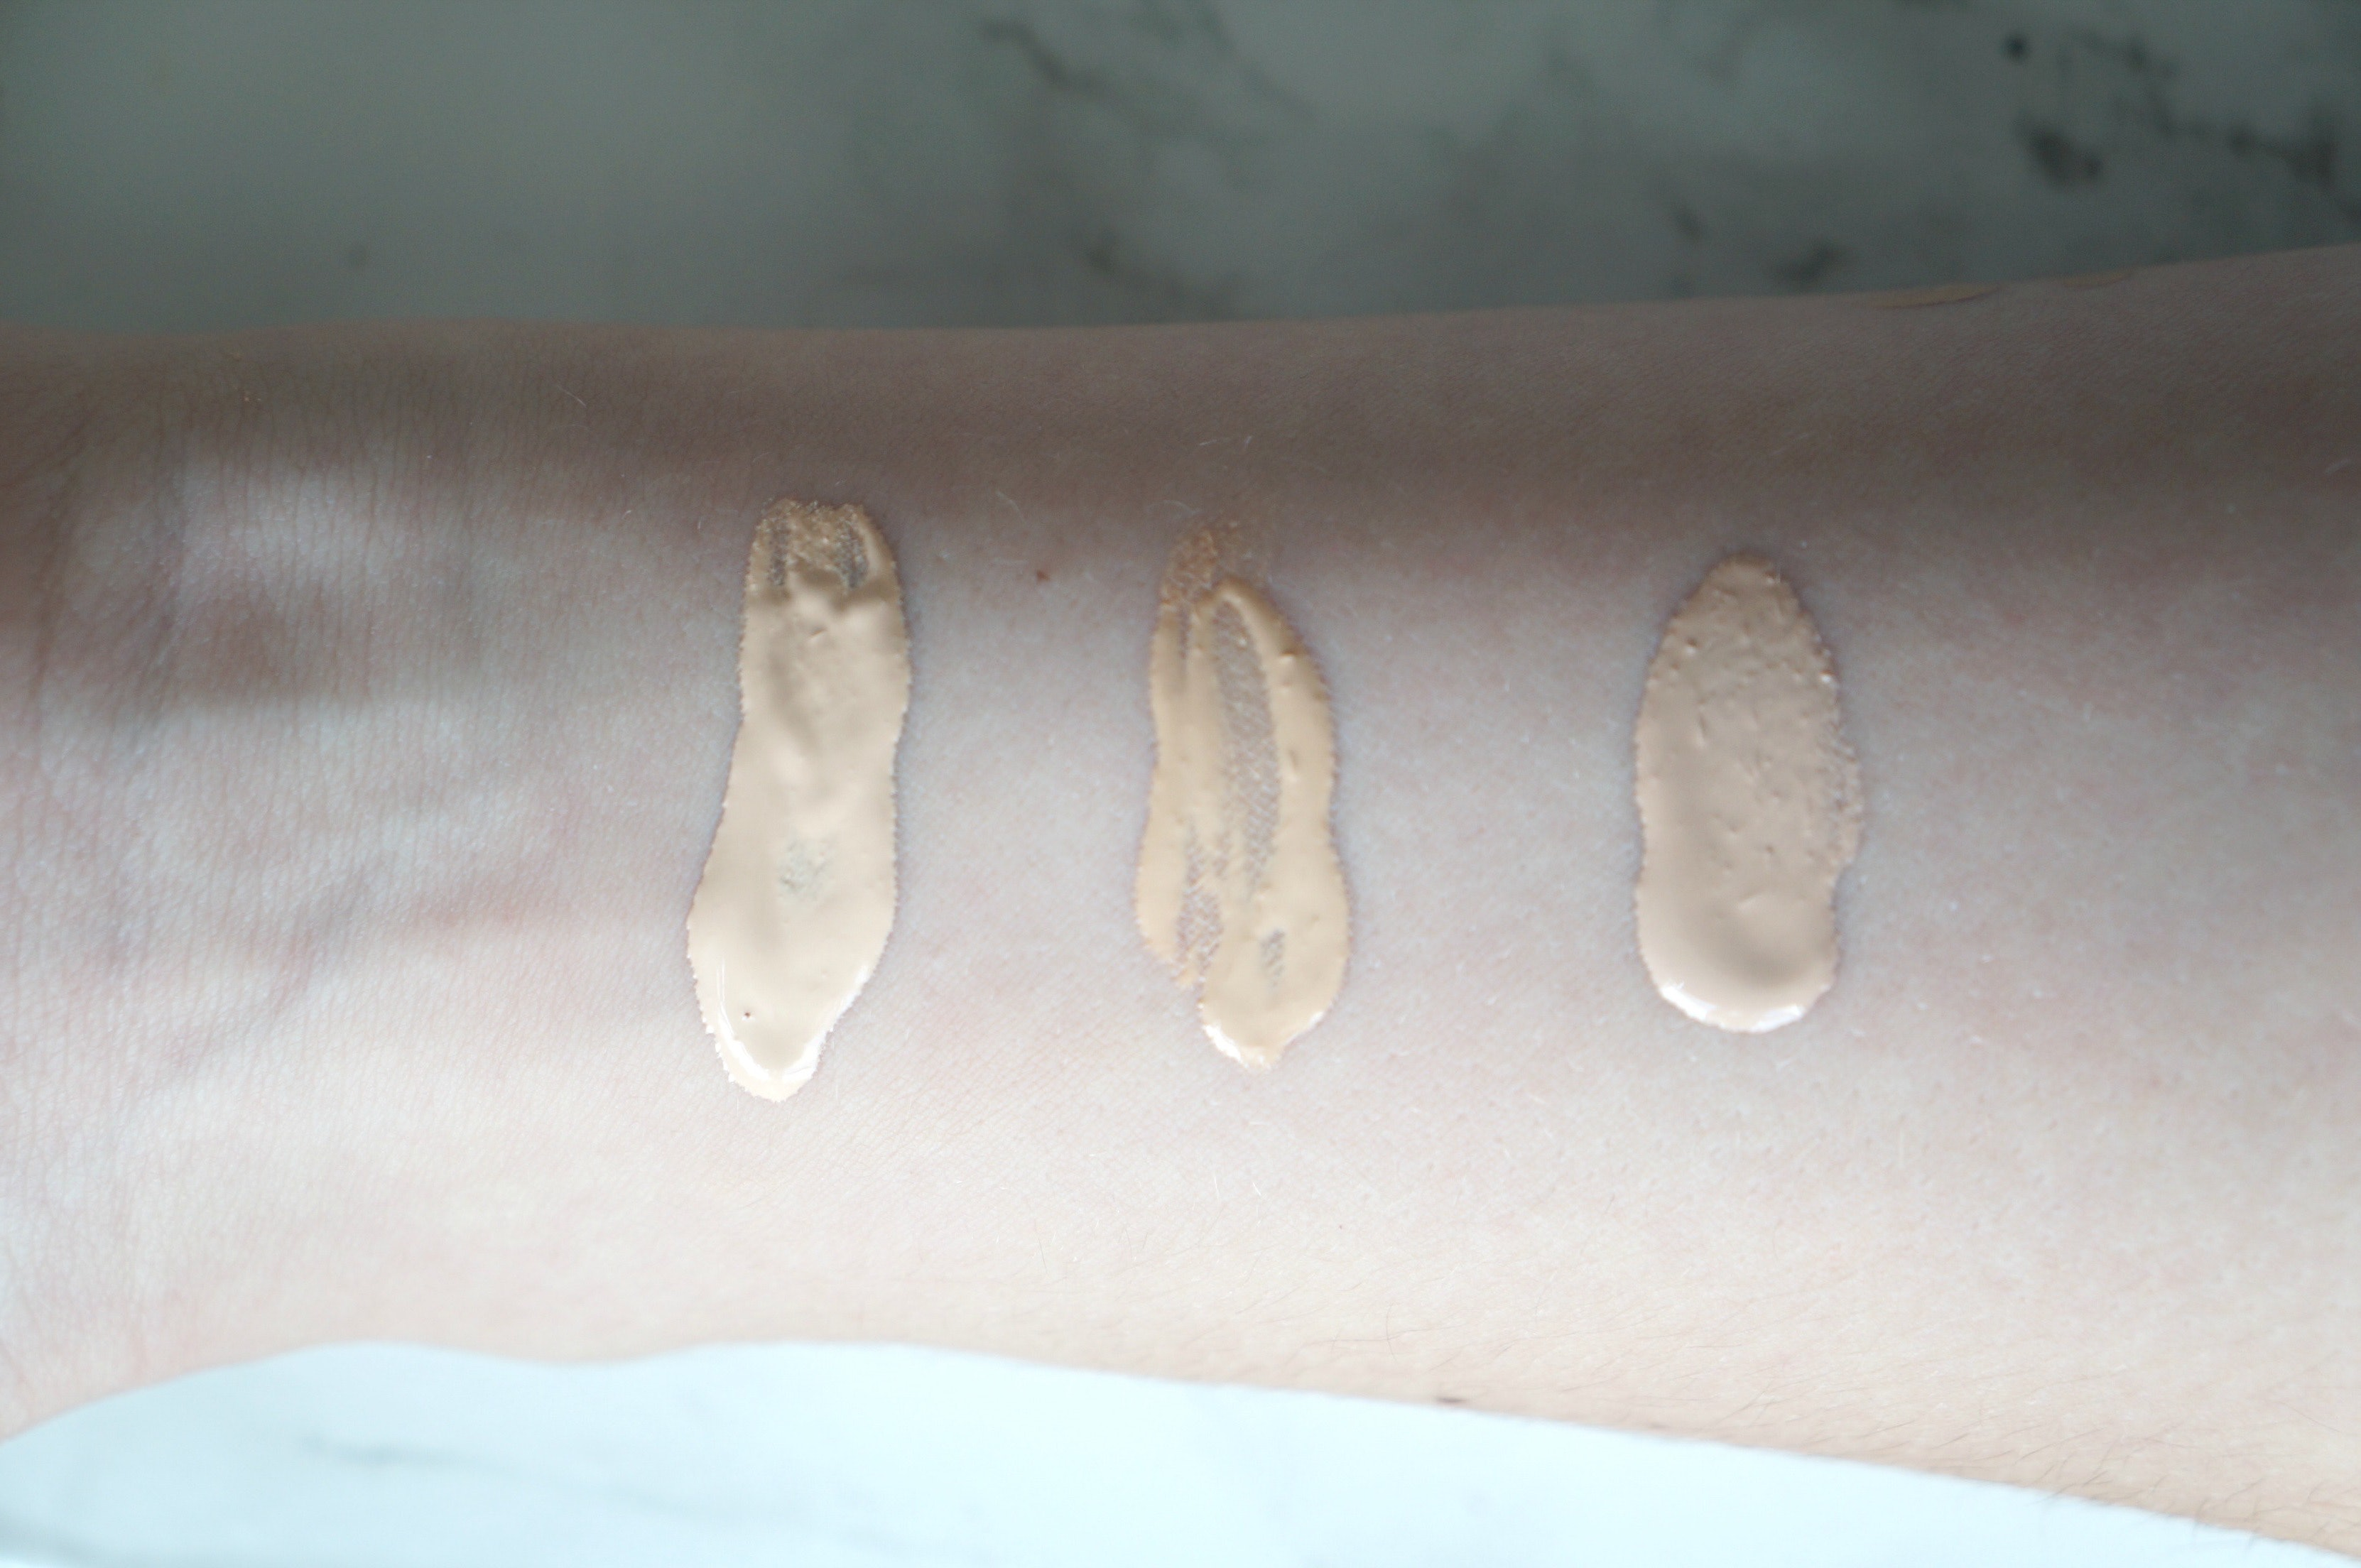 The Best Foundations For Dry Skin Will Give You An Awesome Glow Photos